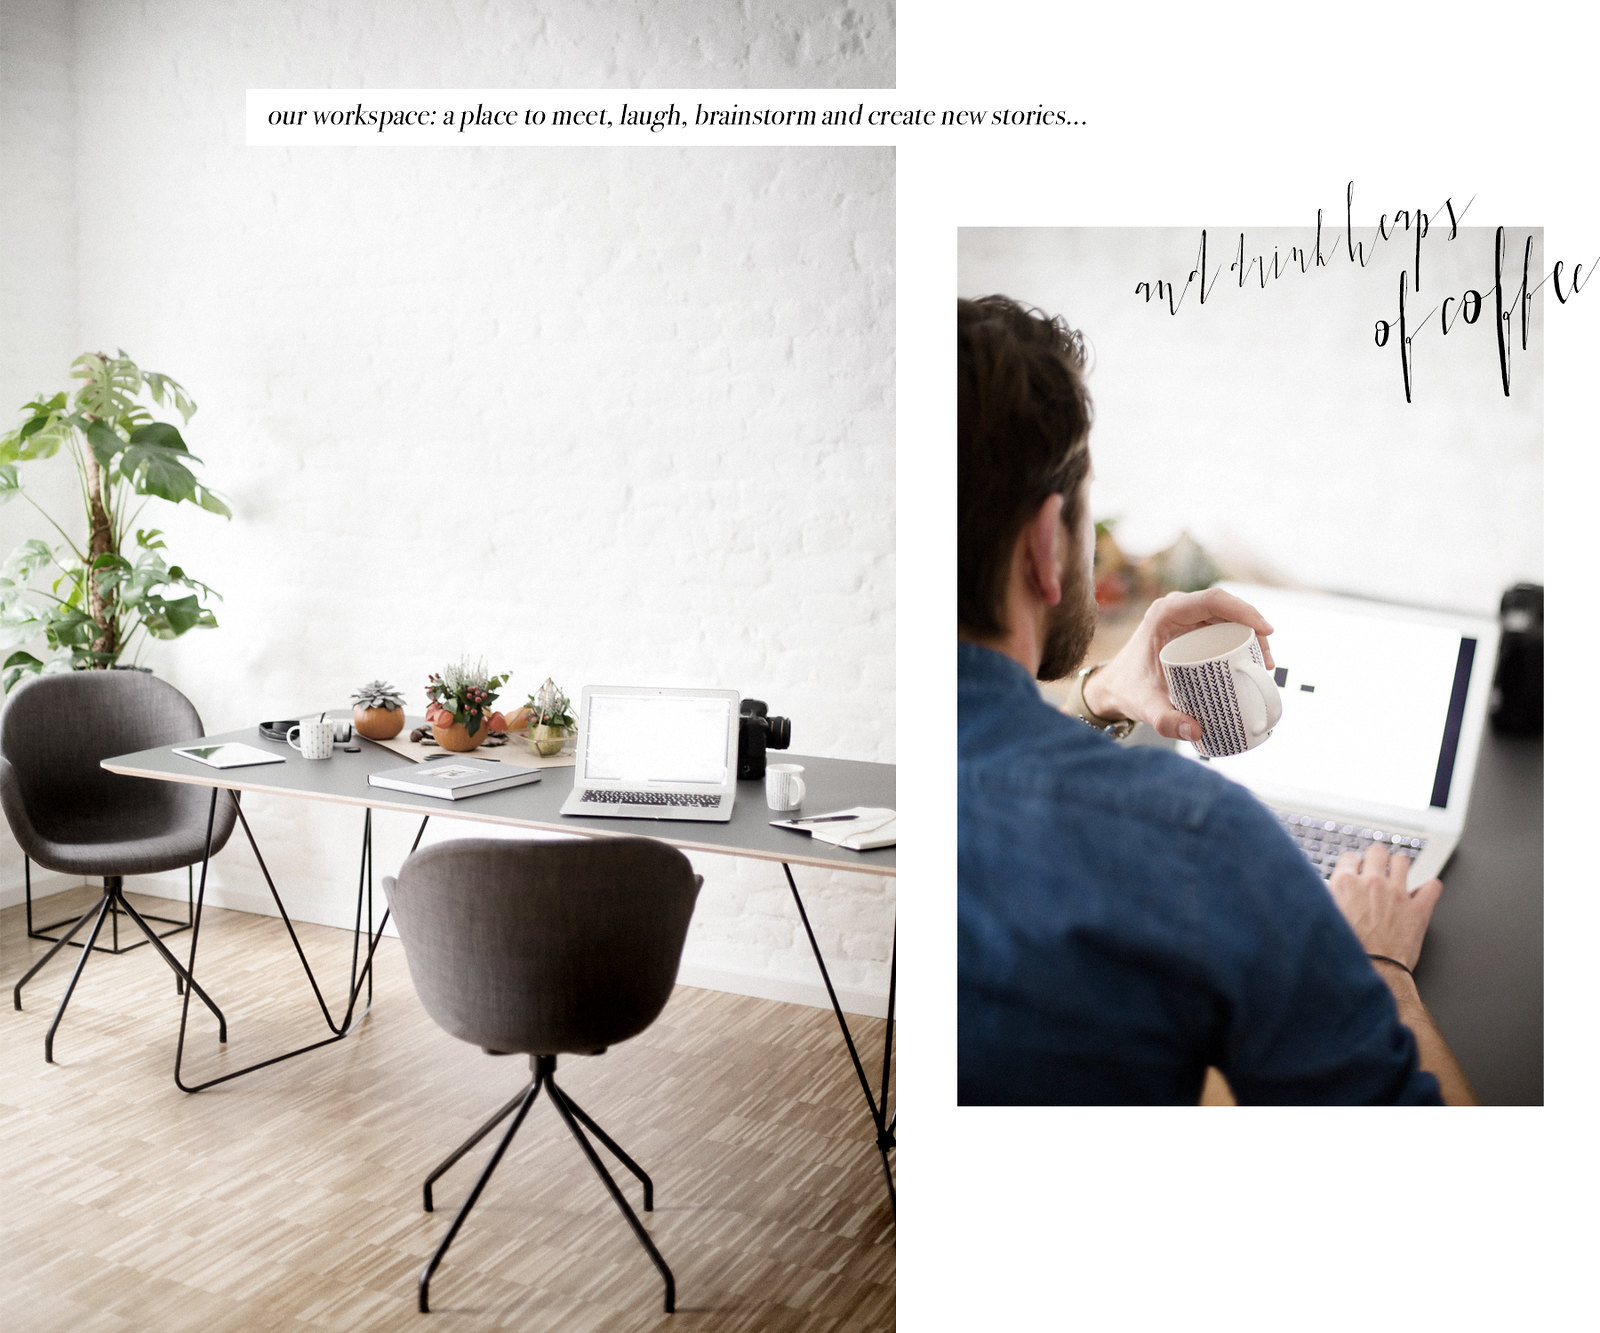 raumfreunde raum.freunde contur stuhl chair eames loft loftlife inspiration tumblr table ando tisch arbeitschtisch pärchen couple love living interior home&living interiordesign workspace blogger bloggerlife cats & dogs modeblog ricarda schernus 7